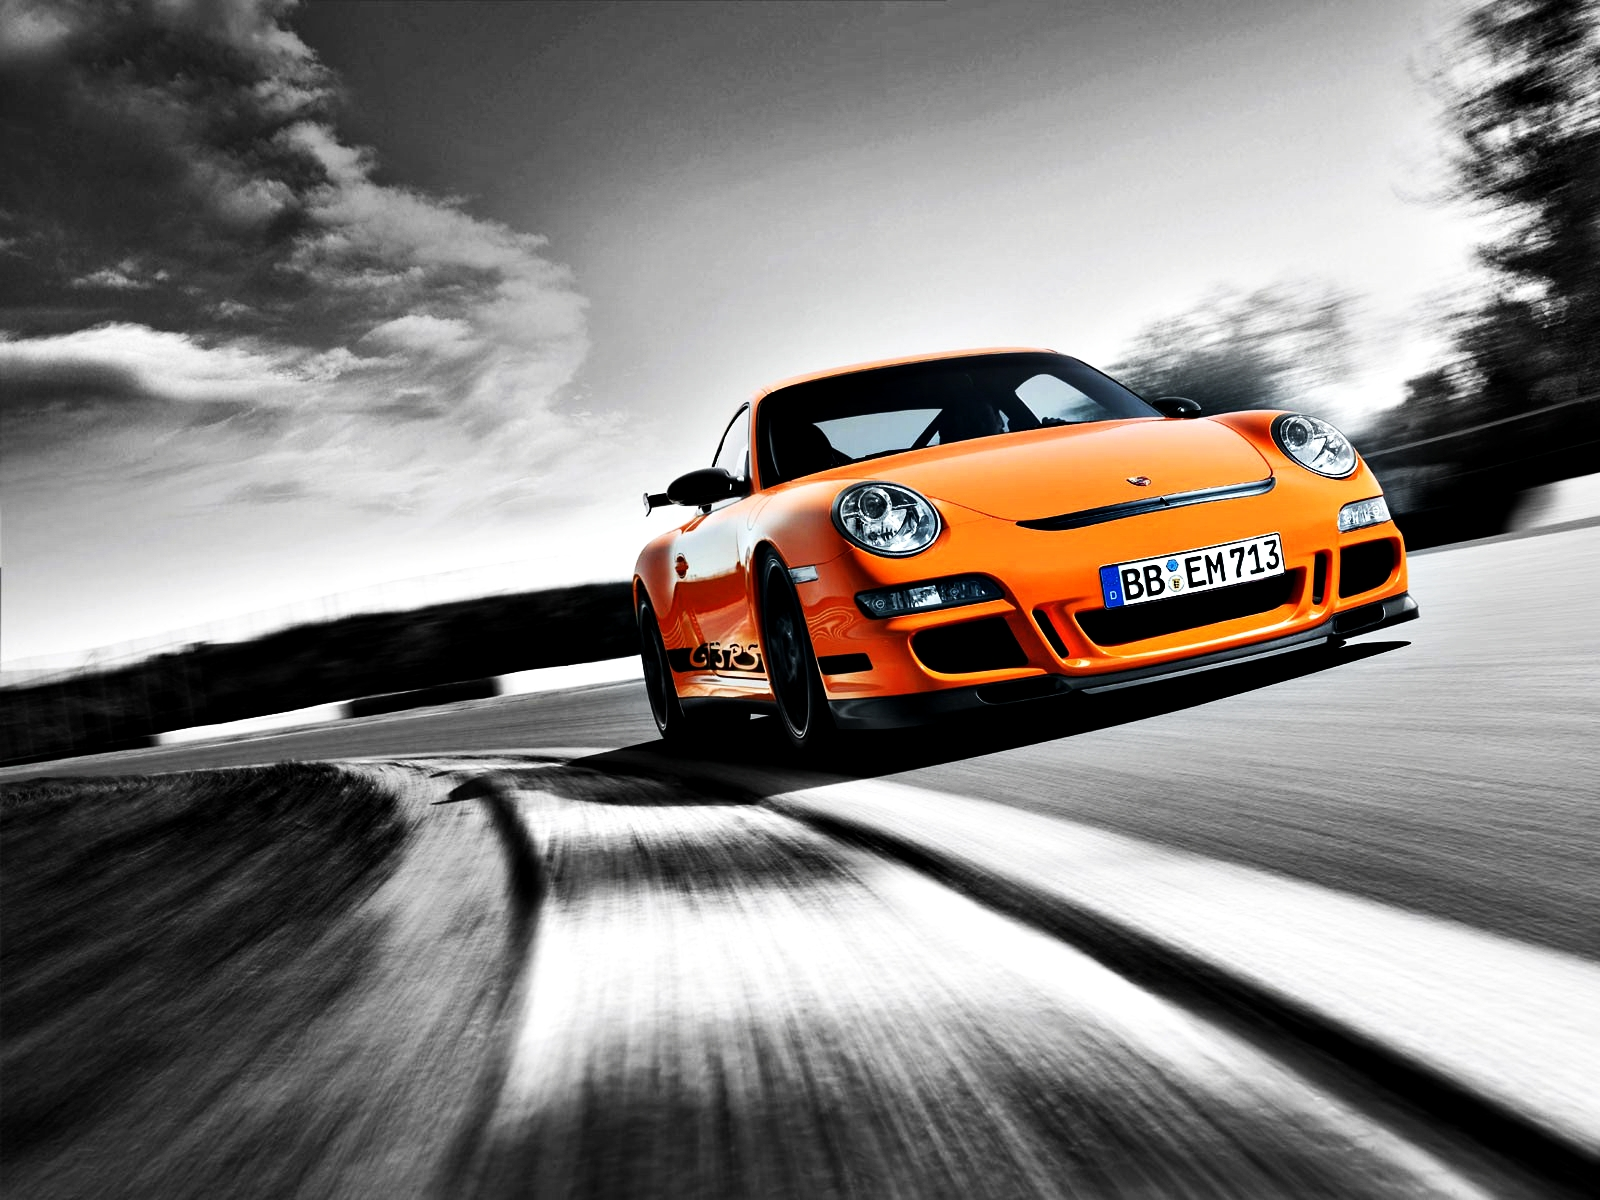 Hd Car wallpapers Car wallpapers for desktop 1600x1200